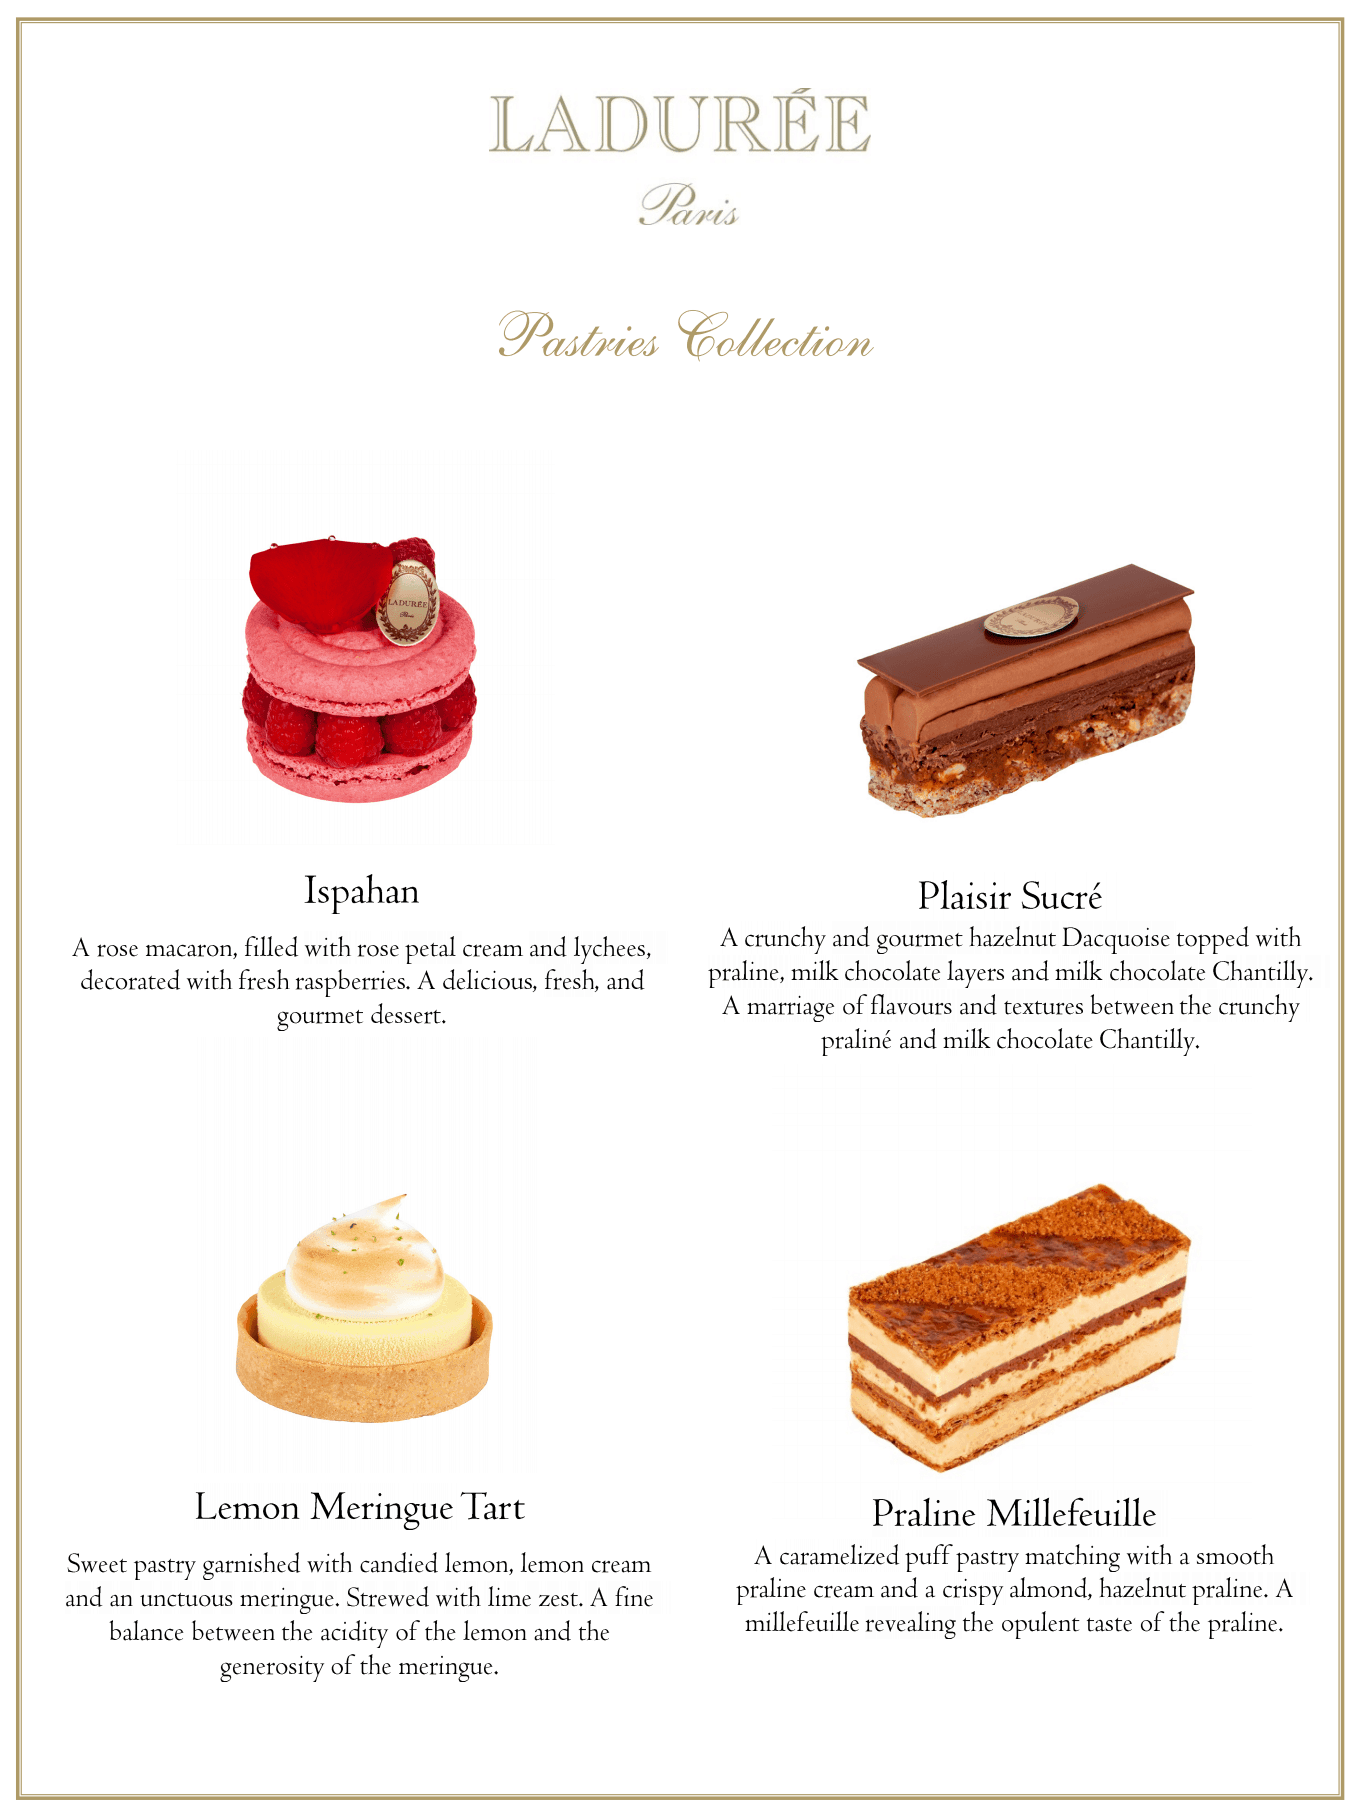 Dessert guide on the different treats available in store.